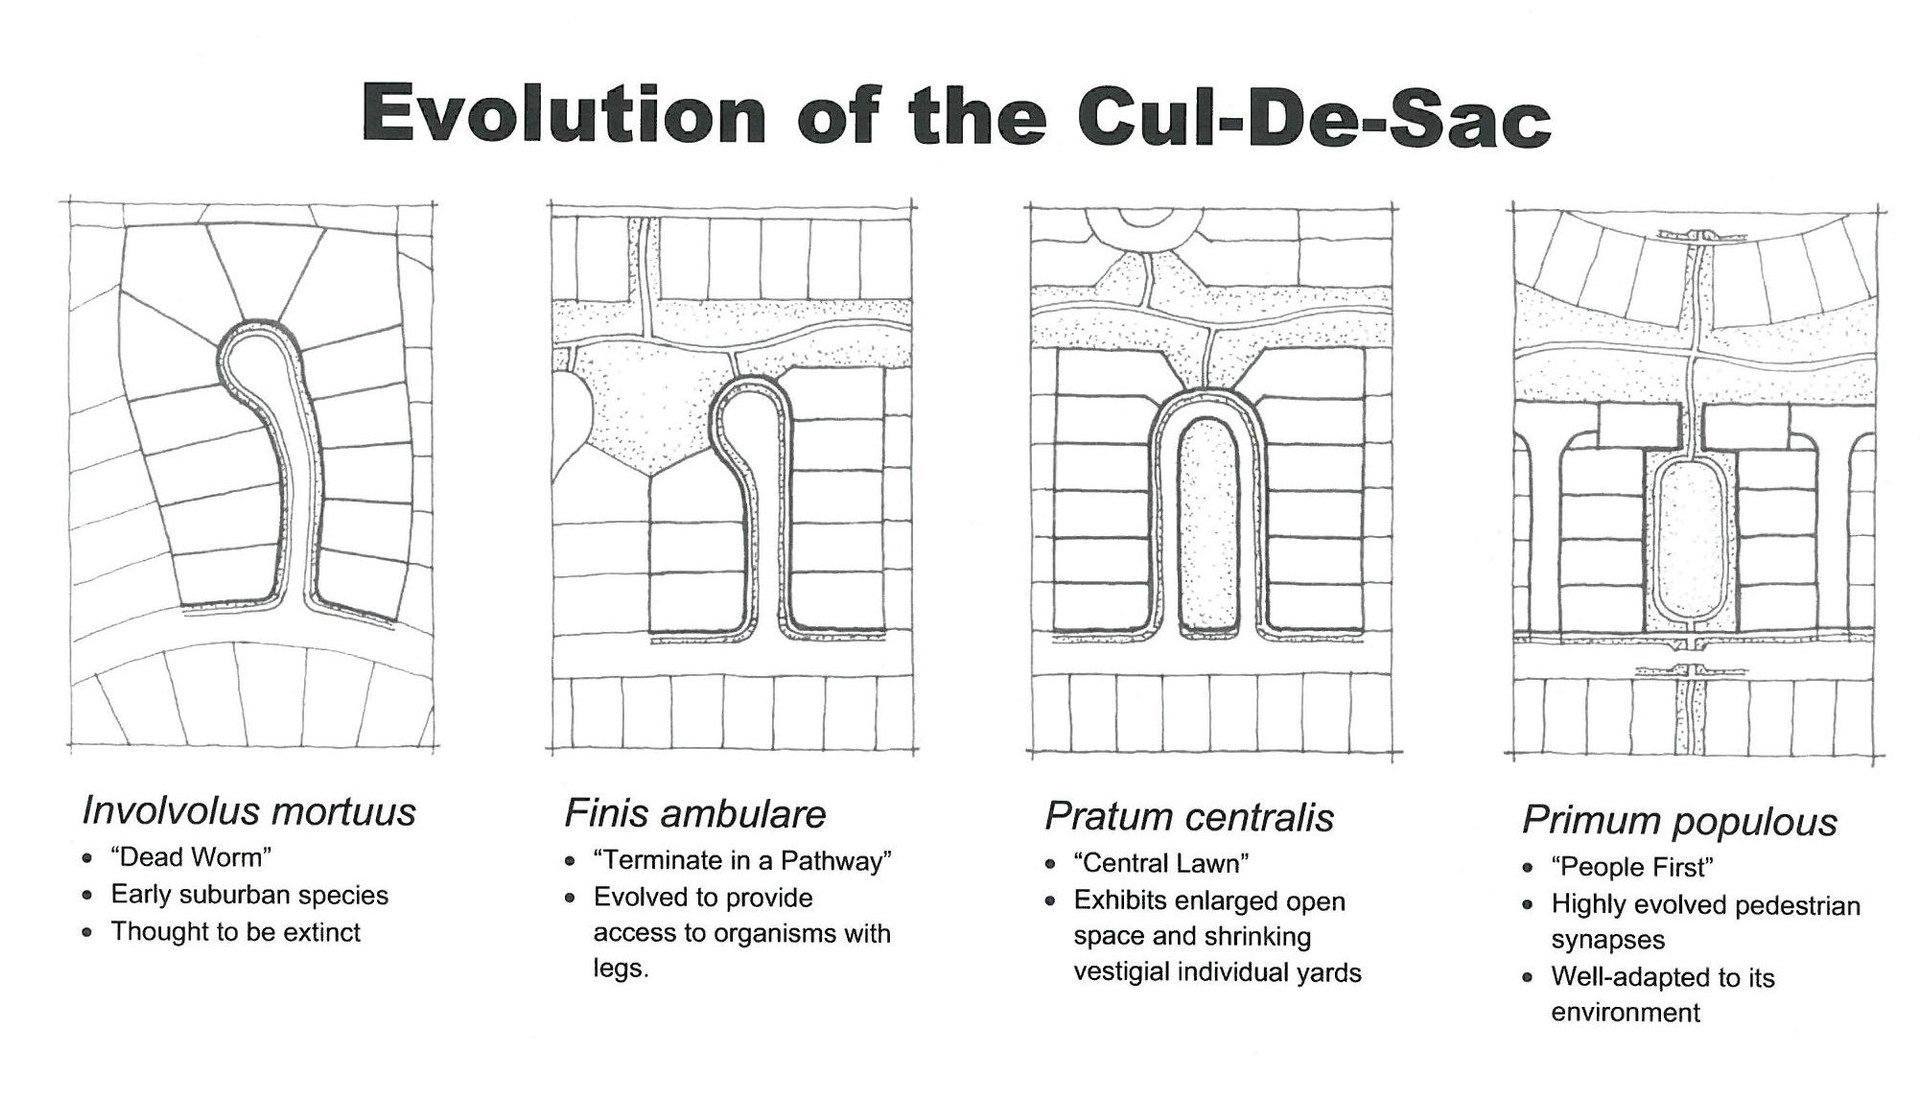 Evolution of the Cul-de-sac